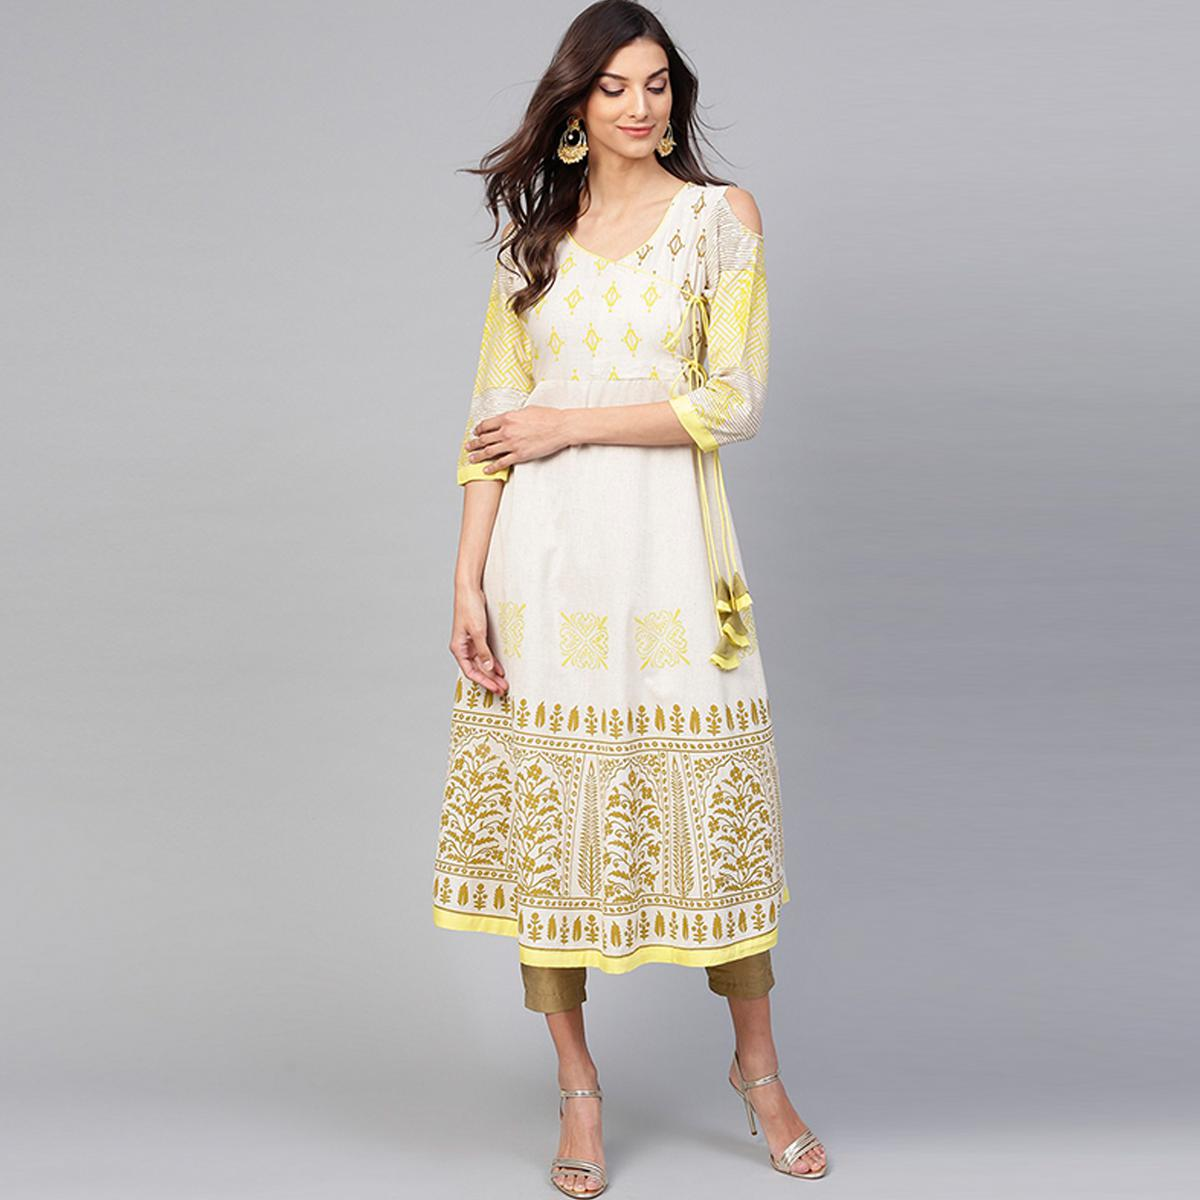 Capricious Off White Colored Casual Wear Cold Shoulder Printed Cotton Kurti